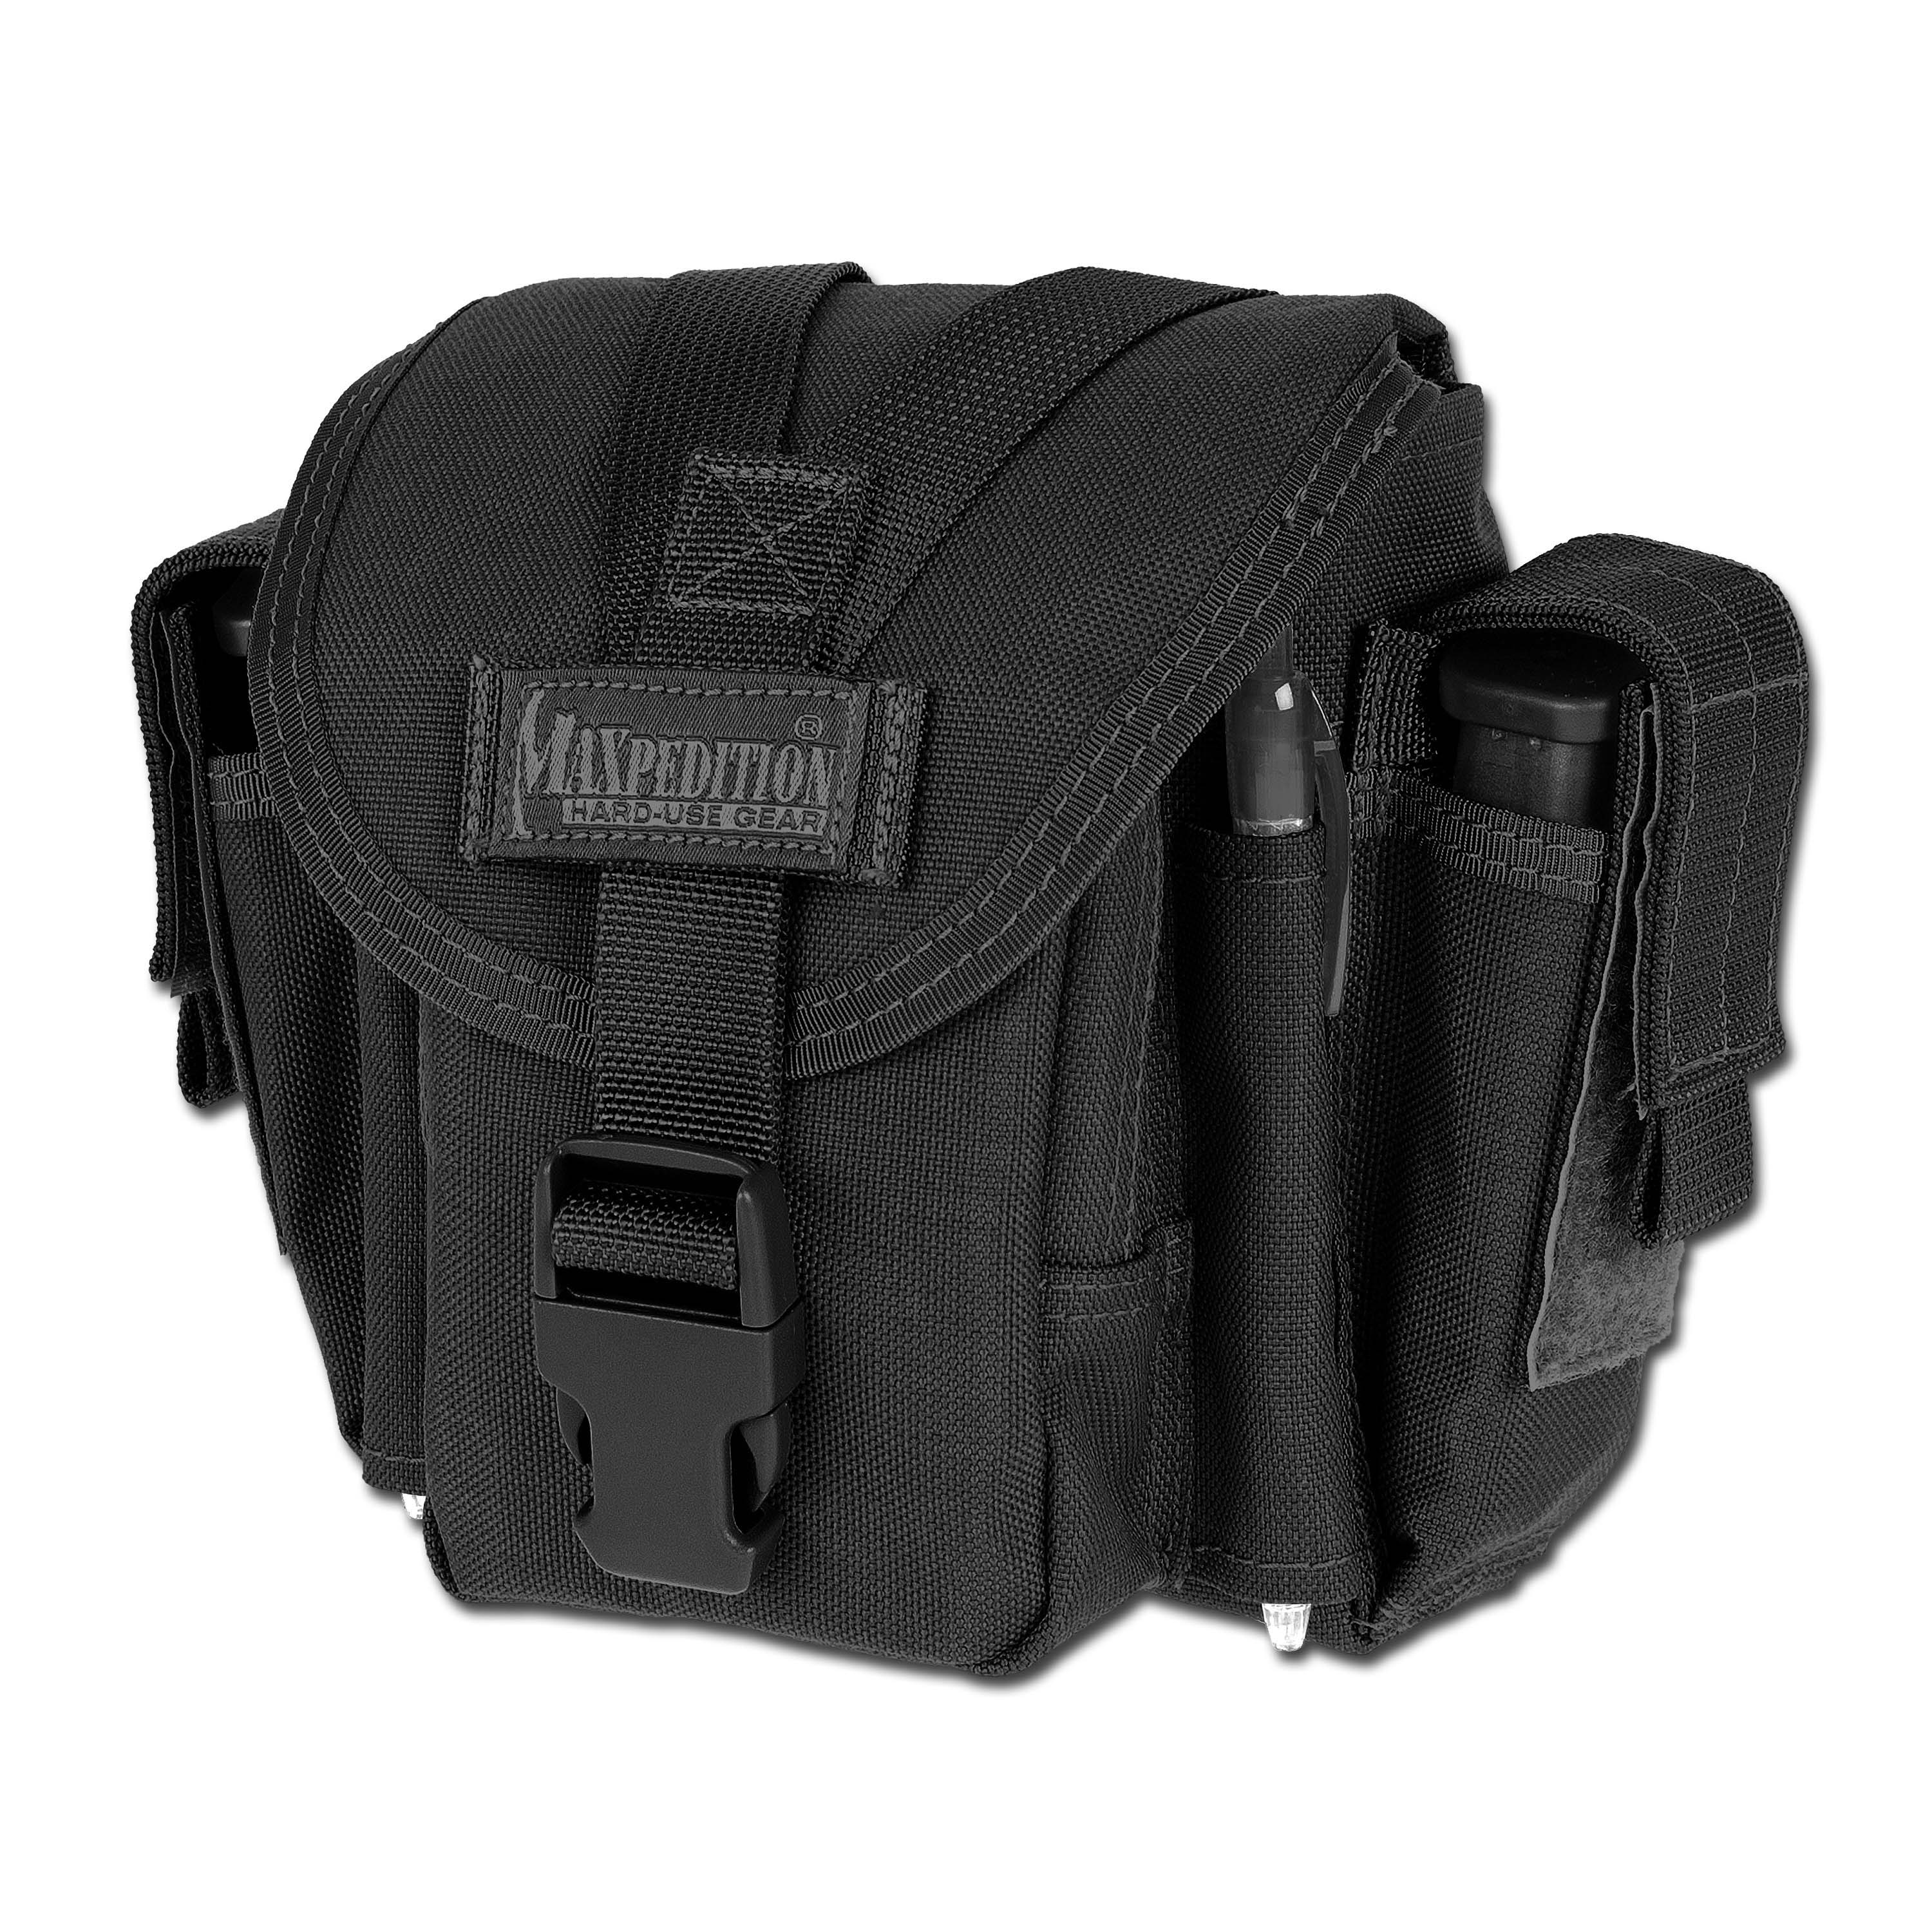 Maxpedition M4 Waist Pack black